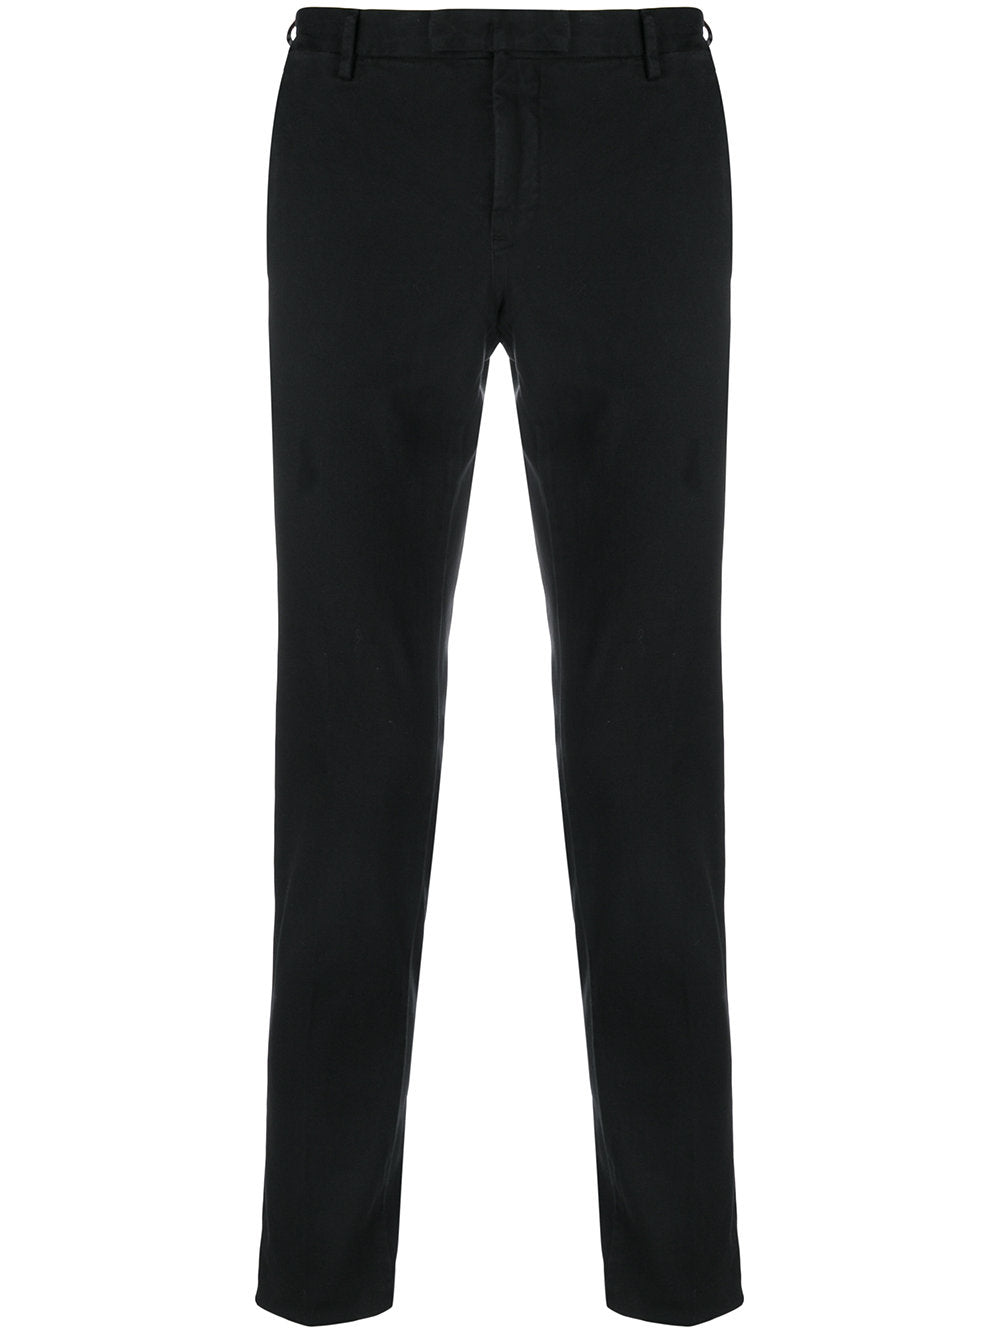 Black pant -P01 - THE UNIQUE FIT